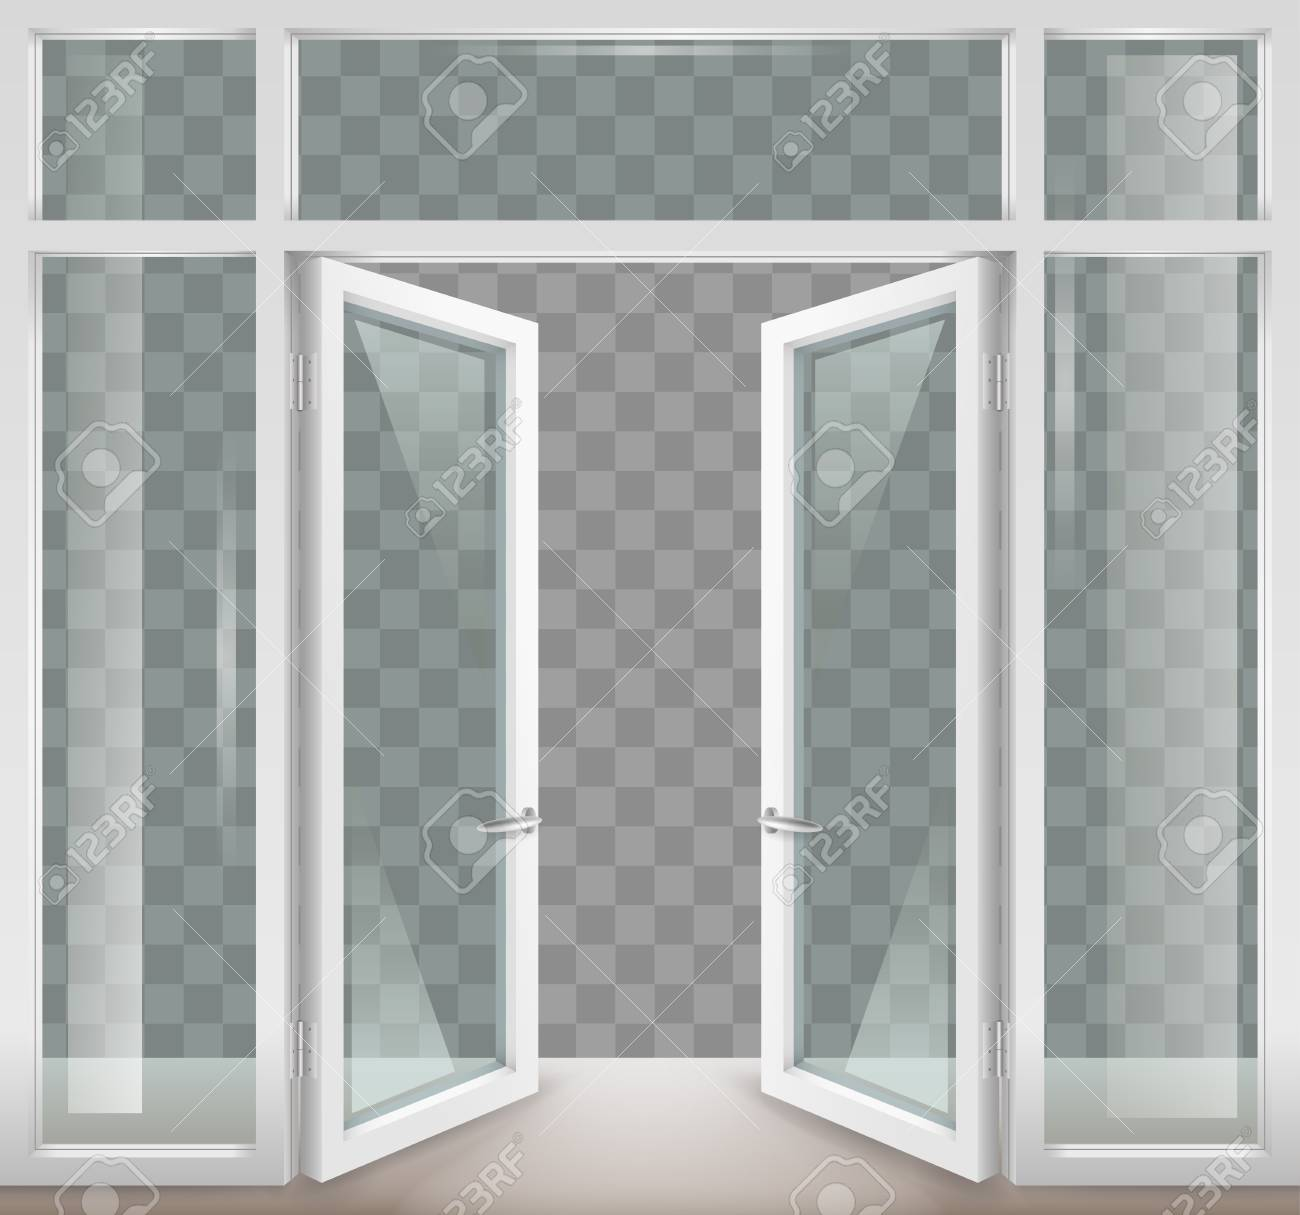 Exceptionnel Vector   White Classic Wooden Open Doors With Transparent Glass. Vector  Graphics